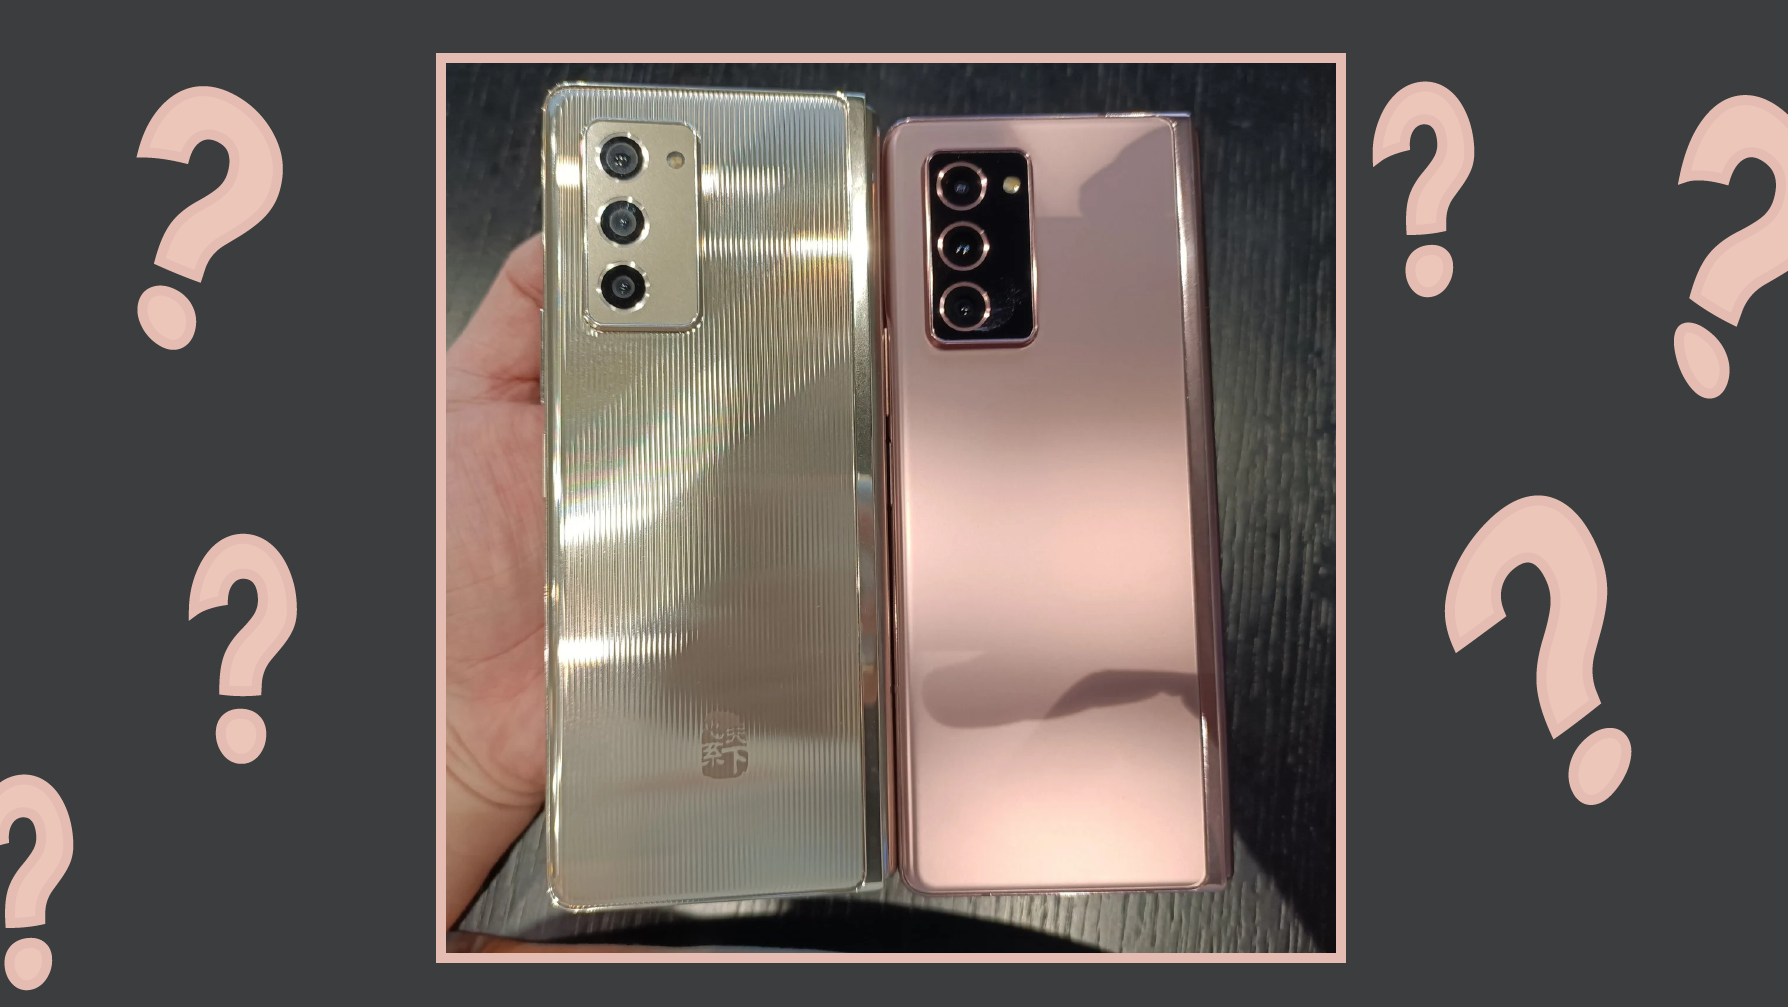 Samsung has a larger Galaxy Z Fold 2 ready for China